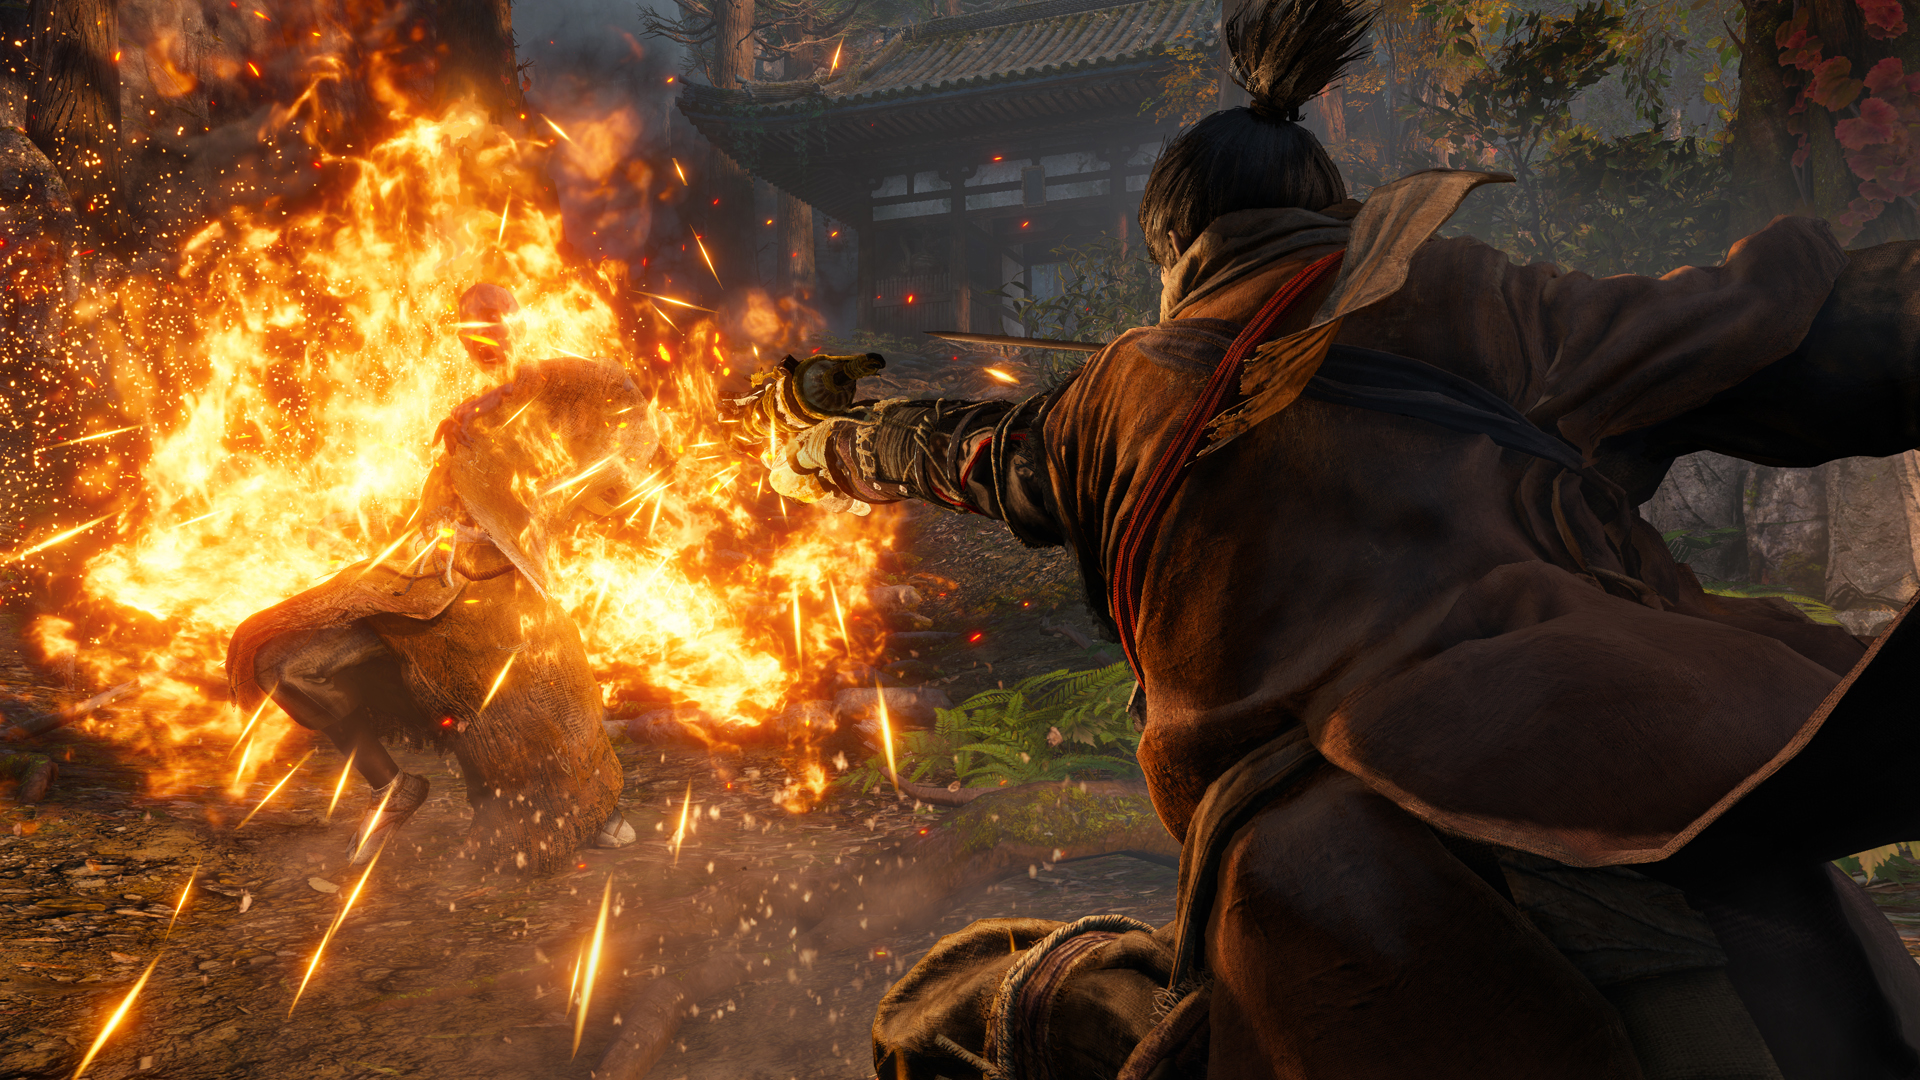 Sekiro: Shadows Die Twice's 'shit got real' moment is among the most effective in games